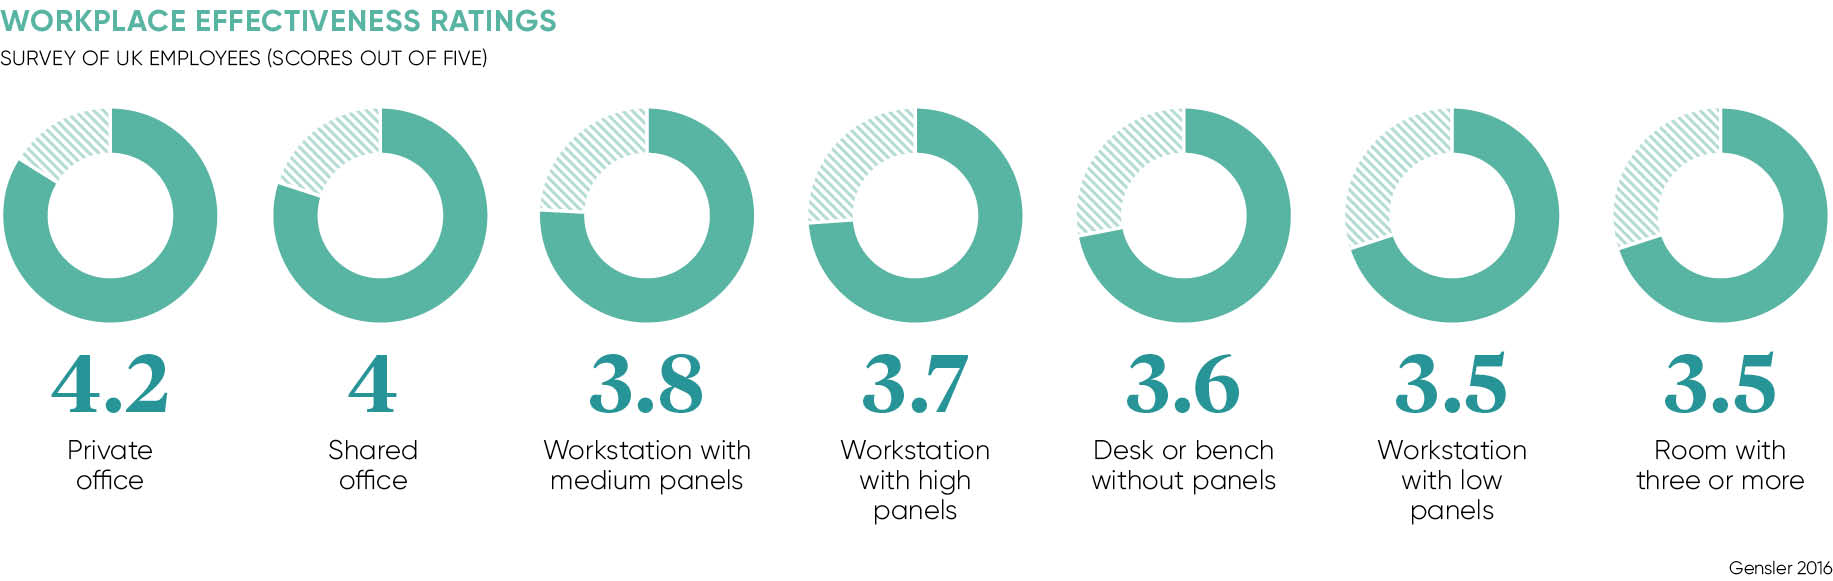 HOW UK EMPLOYEES RATE THE EFFECTIVENESS OF DIFFERENT WORKPLACE SETTINGS